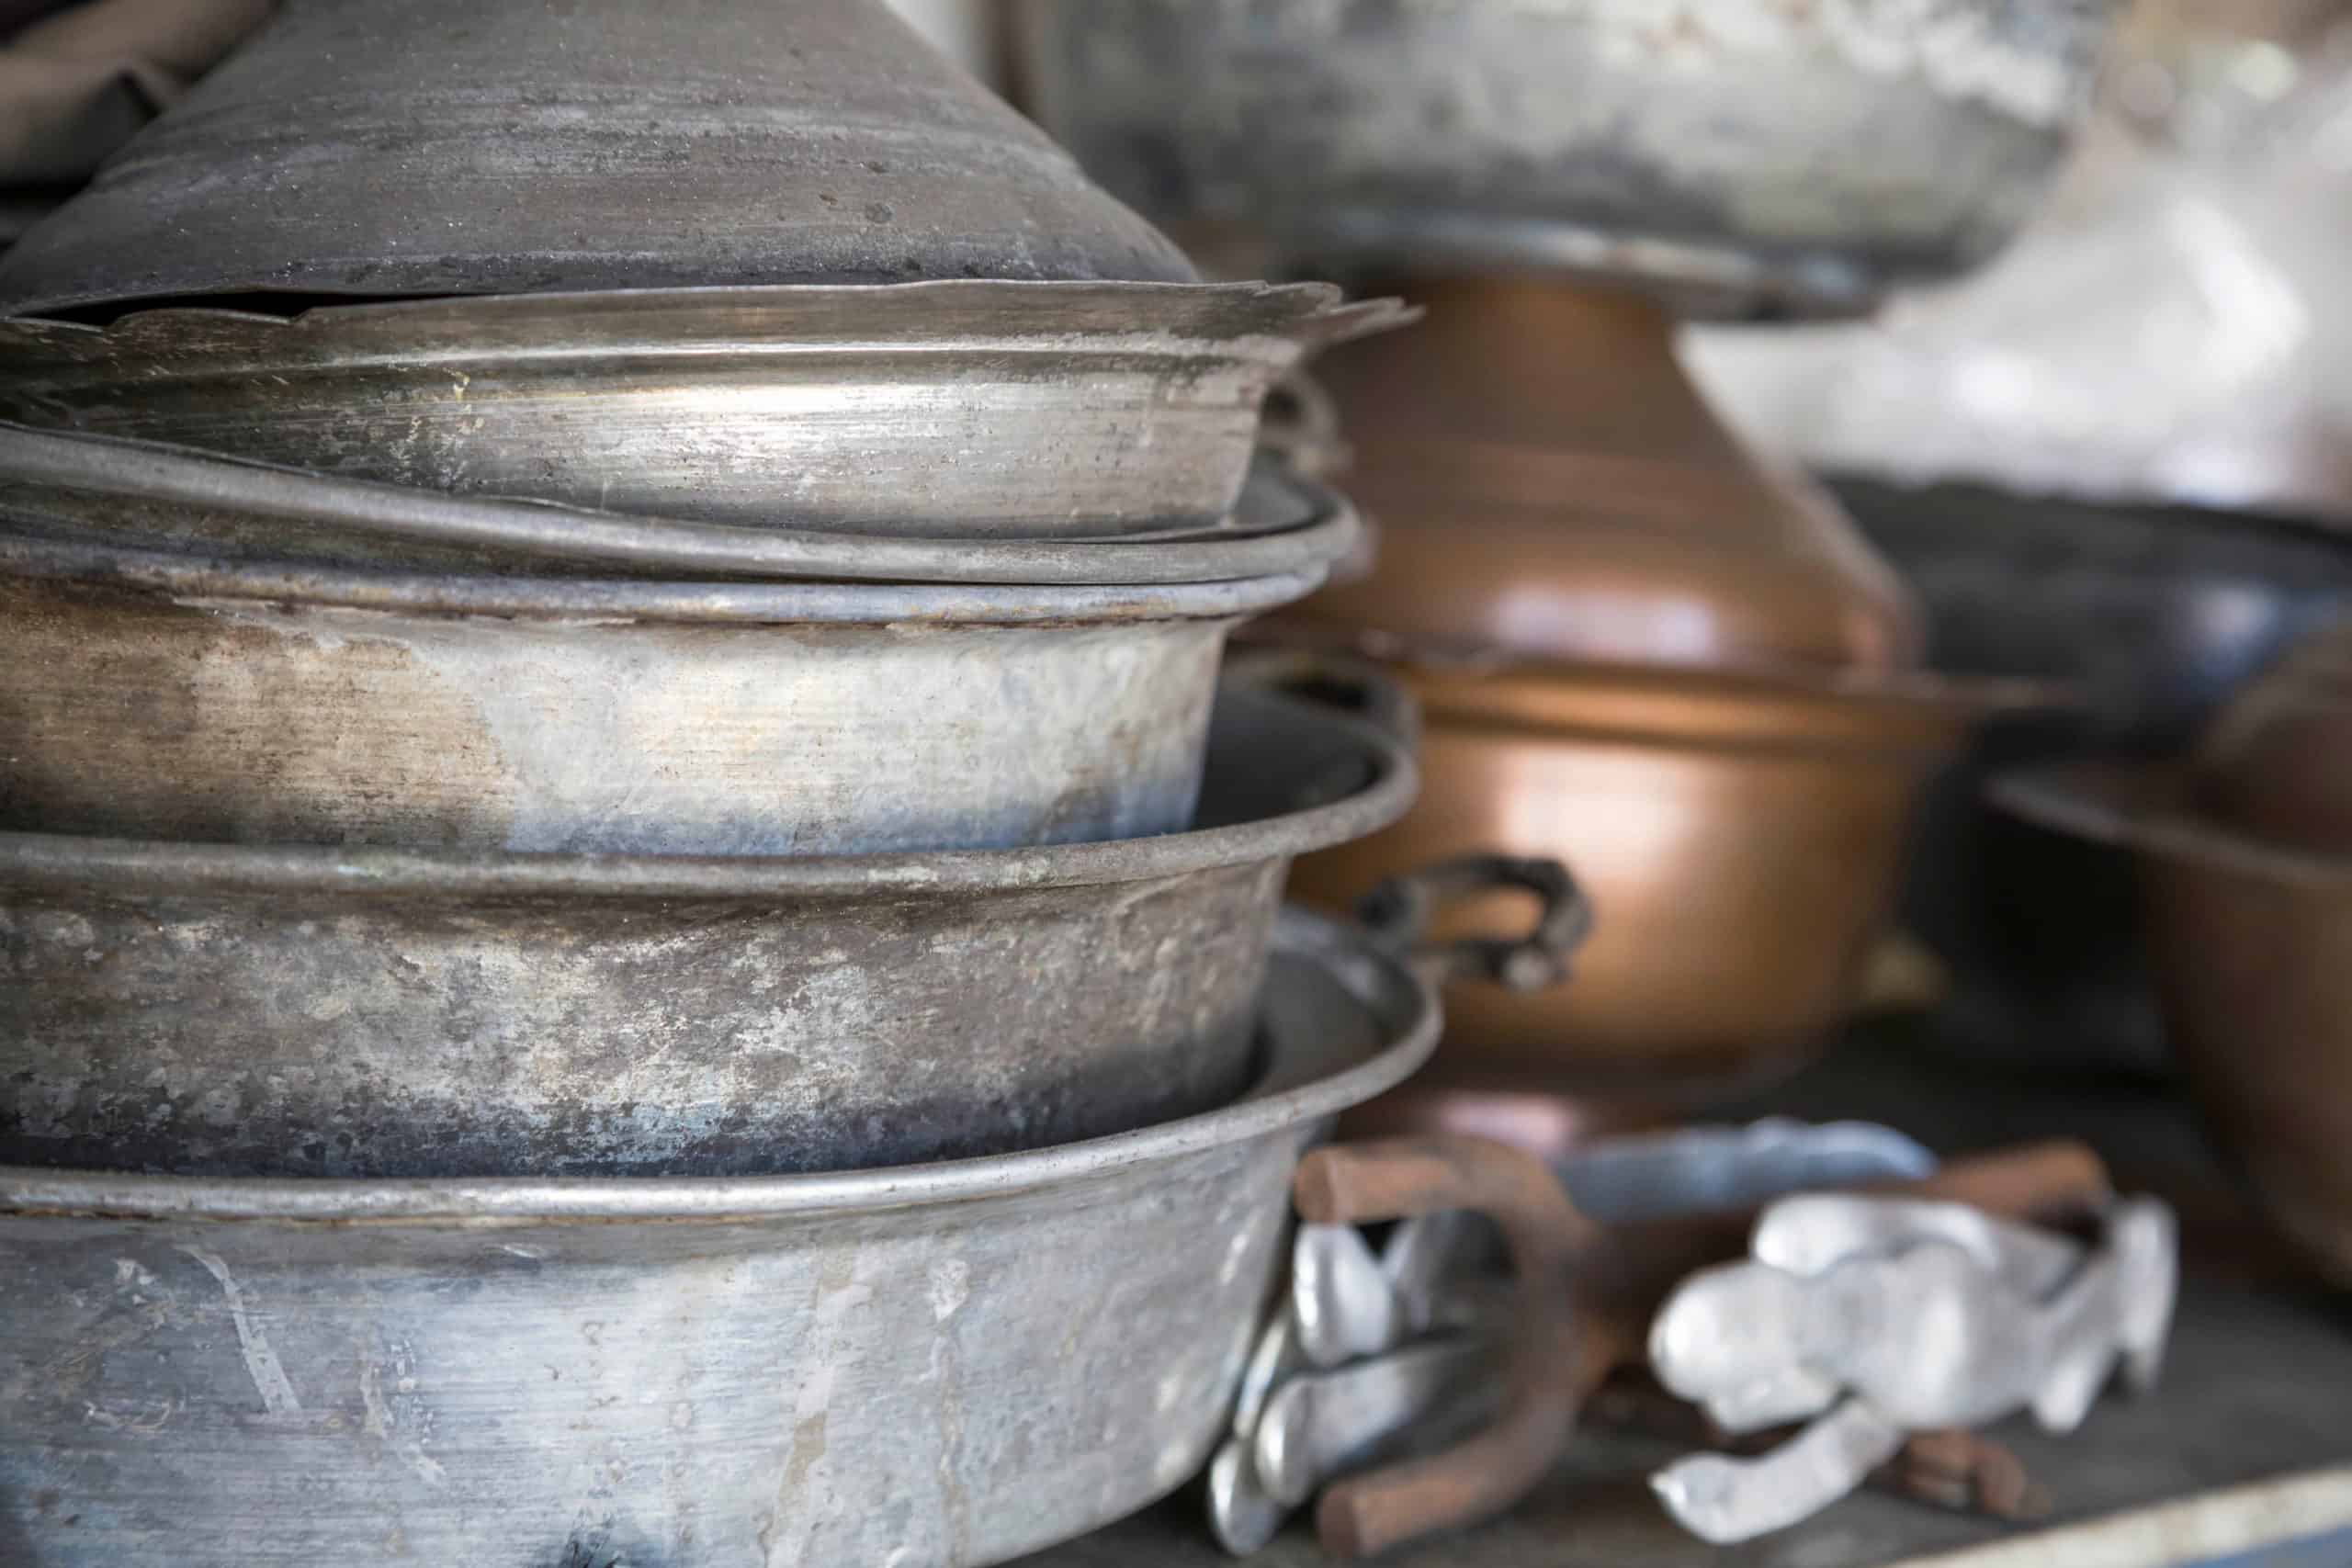 What to do with old pans